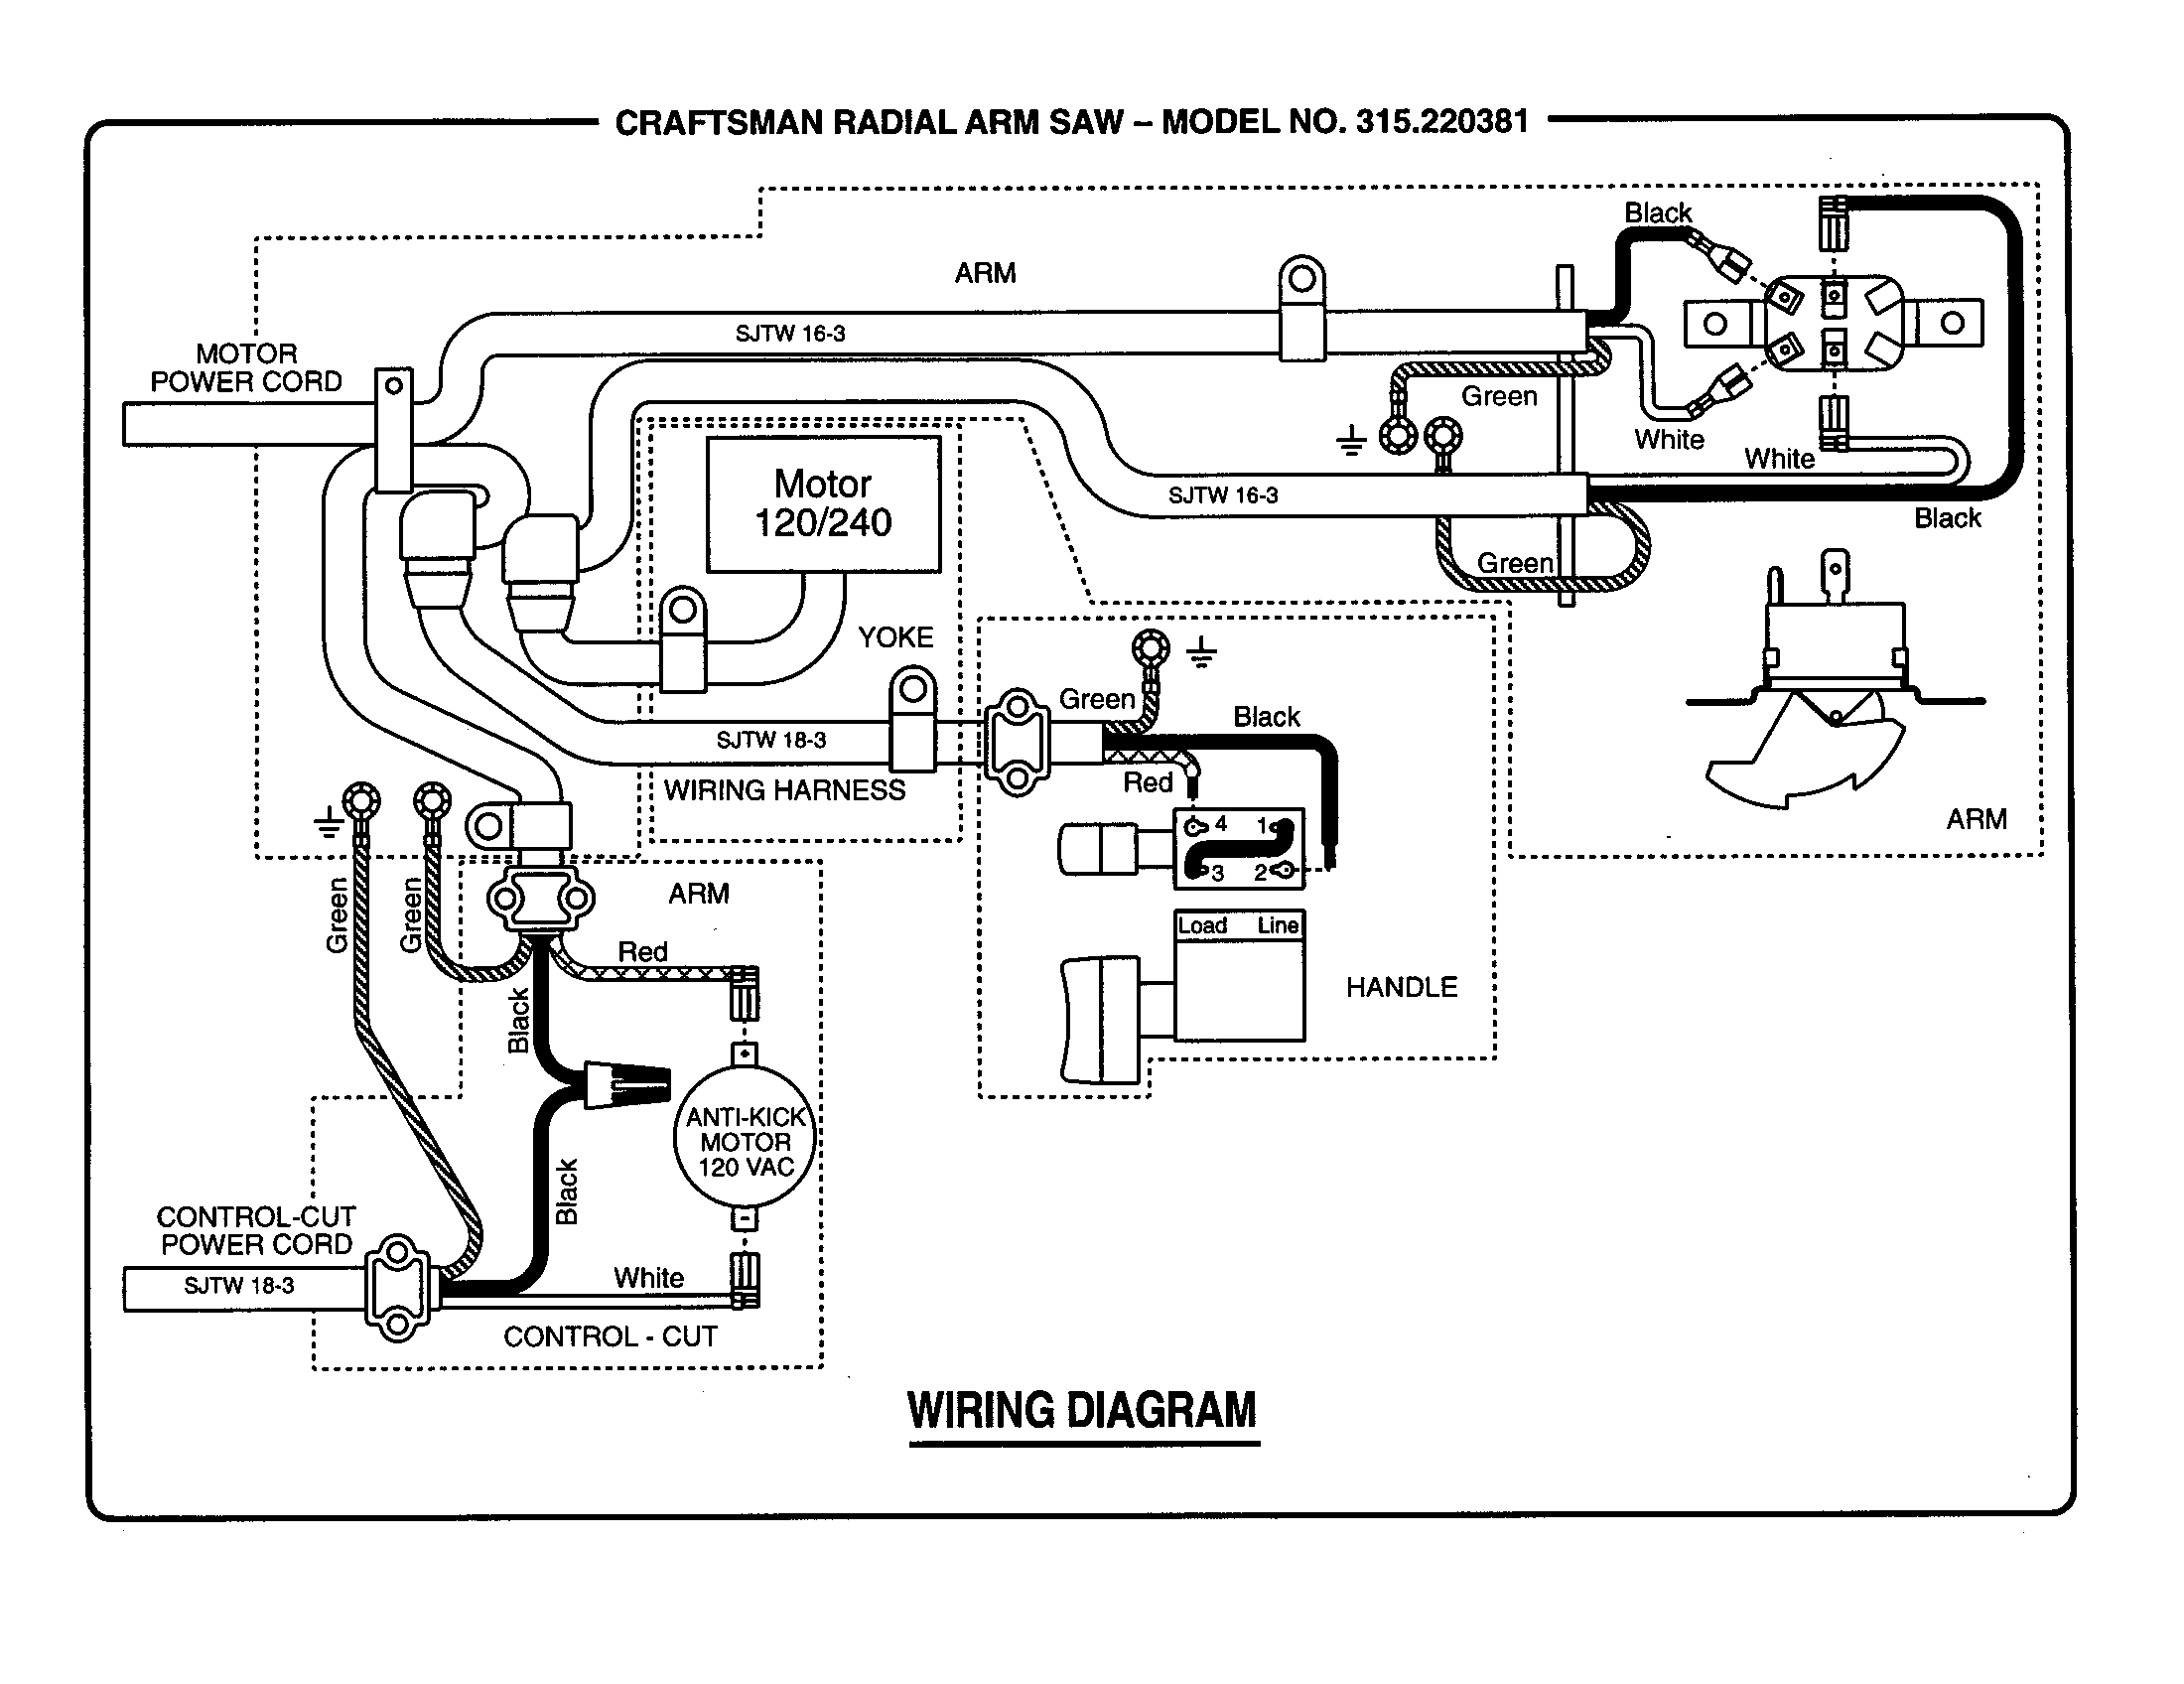 Bg-6 Bench Grinder Wiring Diagram on cat5 diagram, 12v diesel fuel schematics diagram, rj45 connector diagram, mazda tribute cruise control harness diagram, secondary ignition pickup sensor probe schematic diagram, mazda 6 throttle connection diagram,